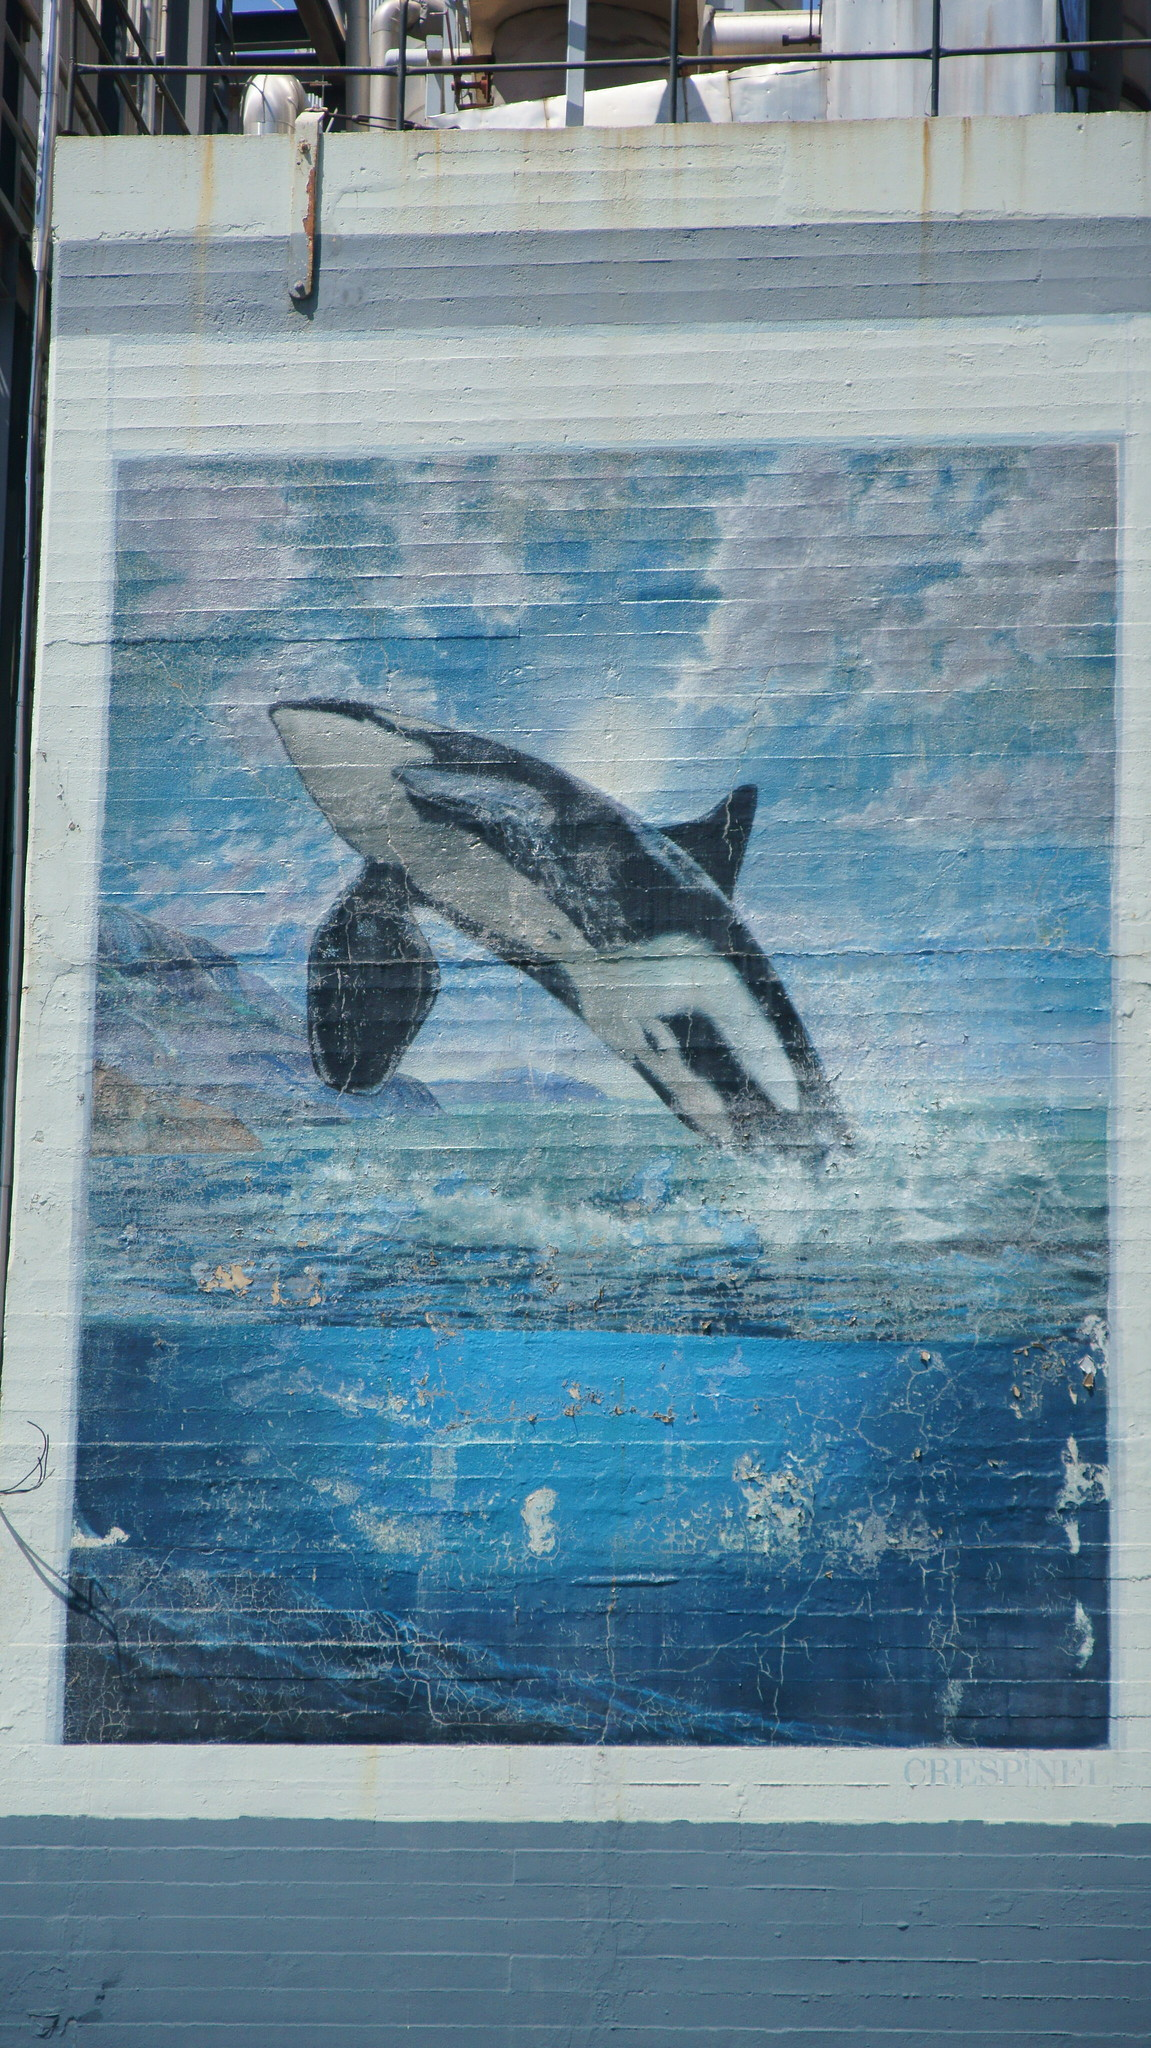 Orca Mural in Seattle